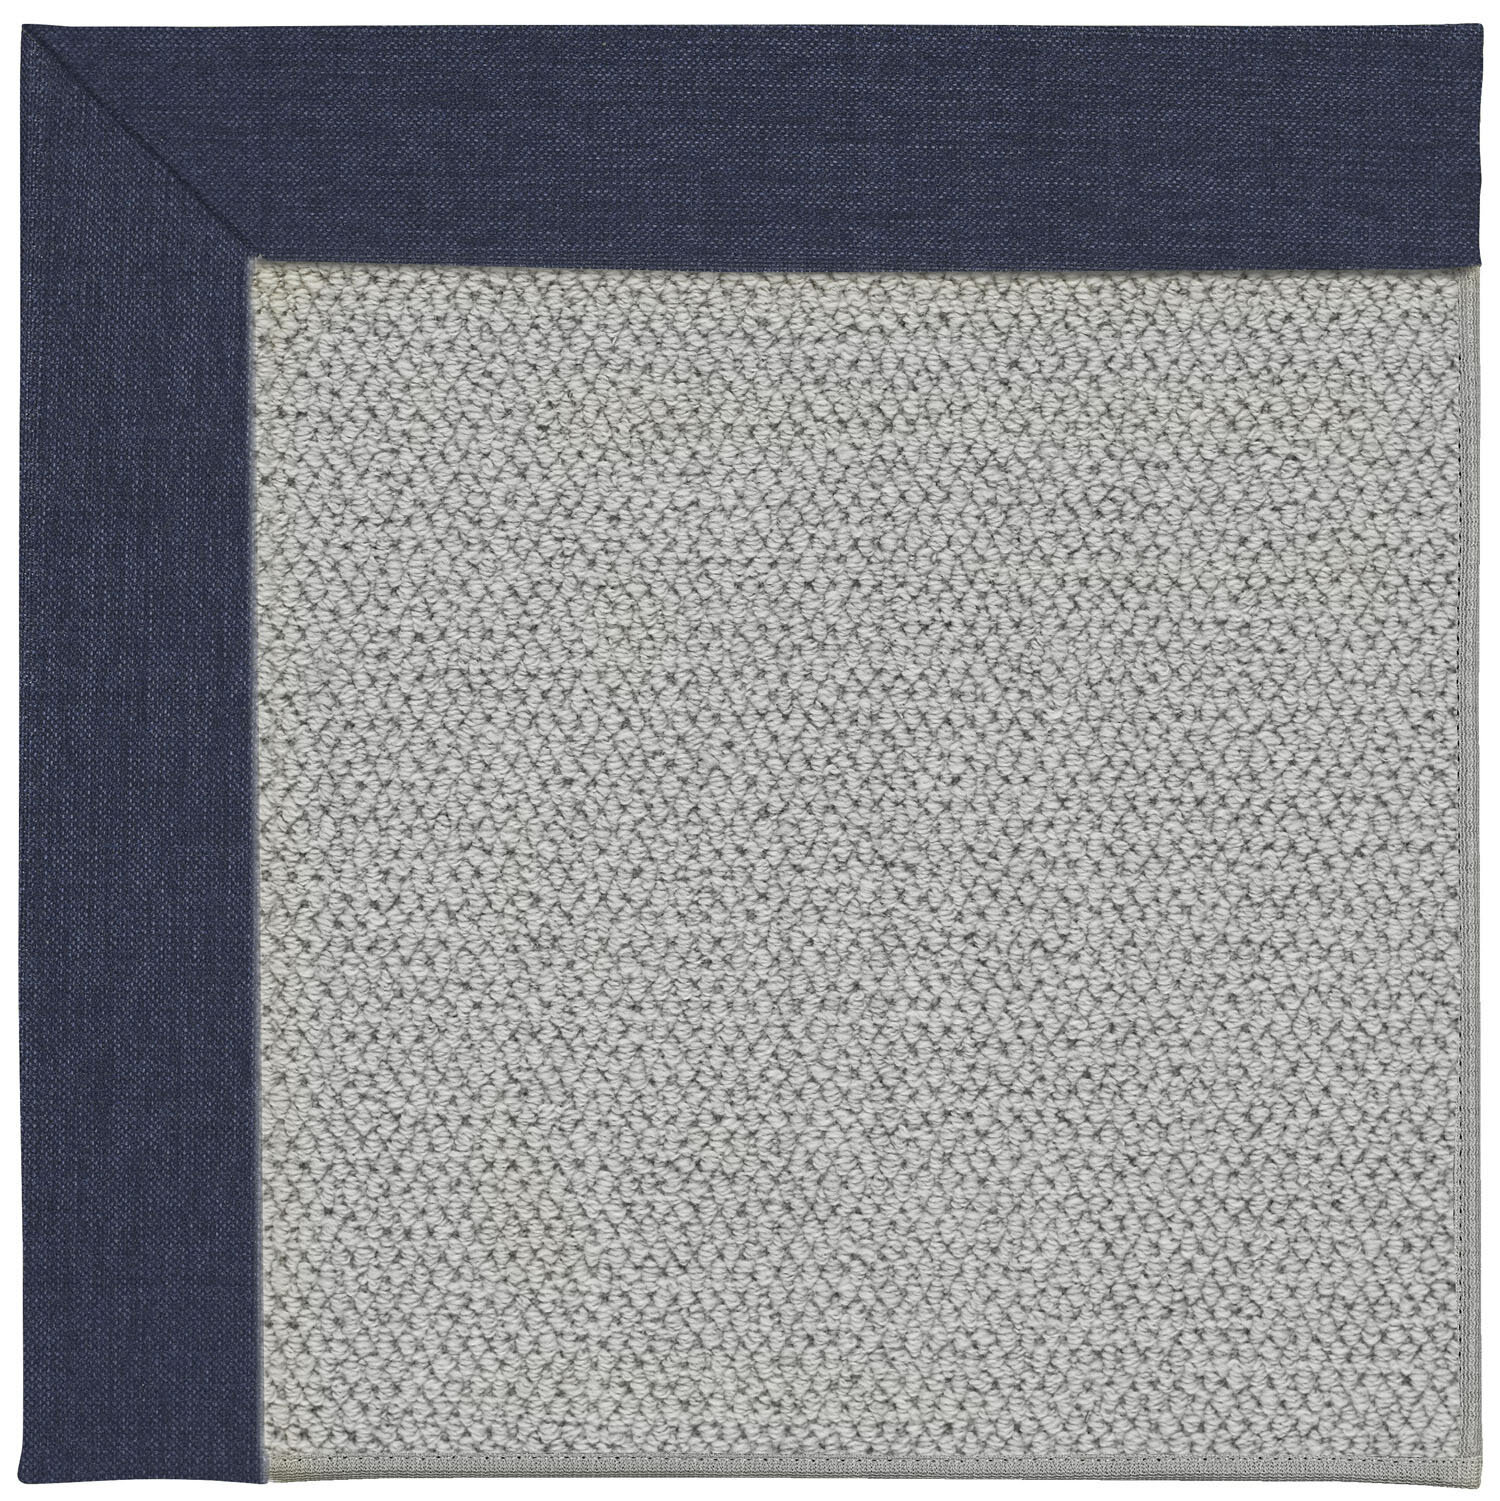 Capel Rugs Inspirit Silver Machine Tufted Navy Gray Area